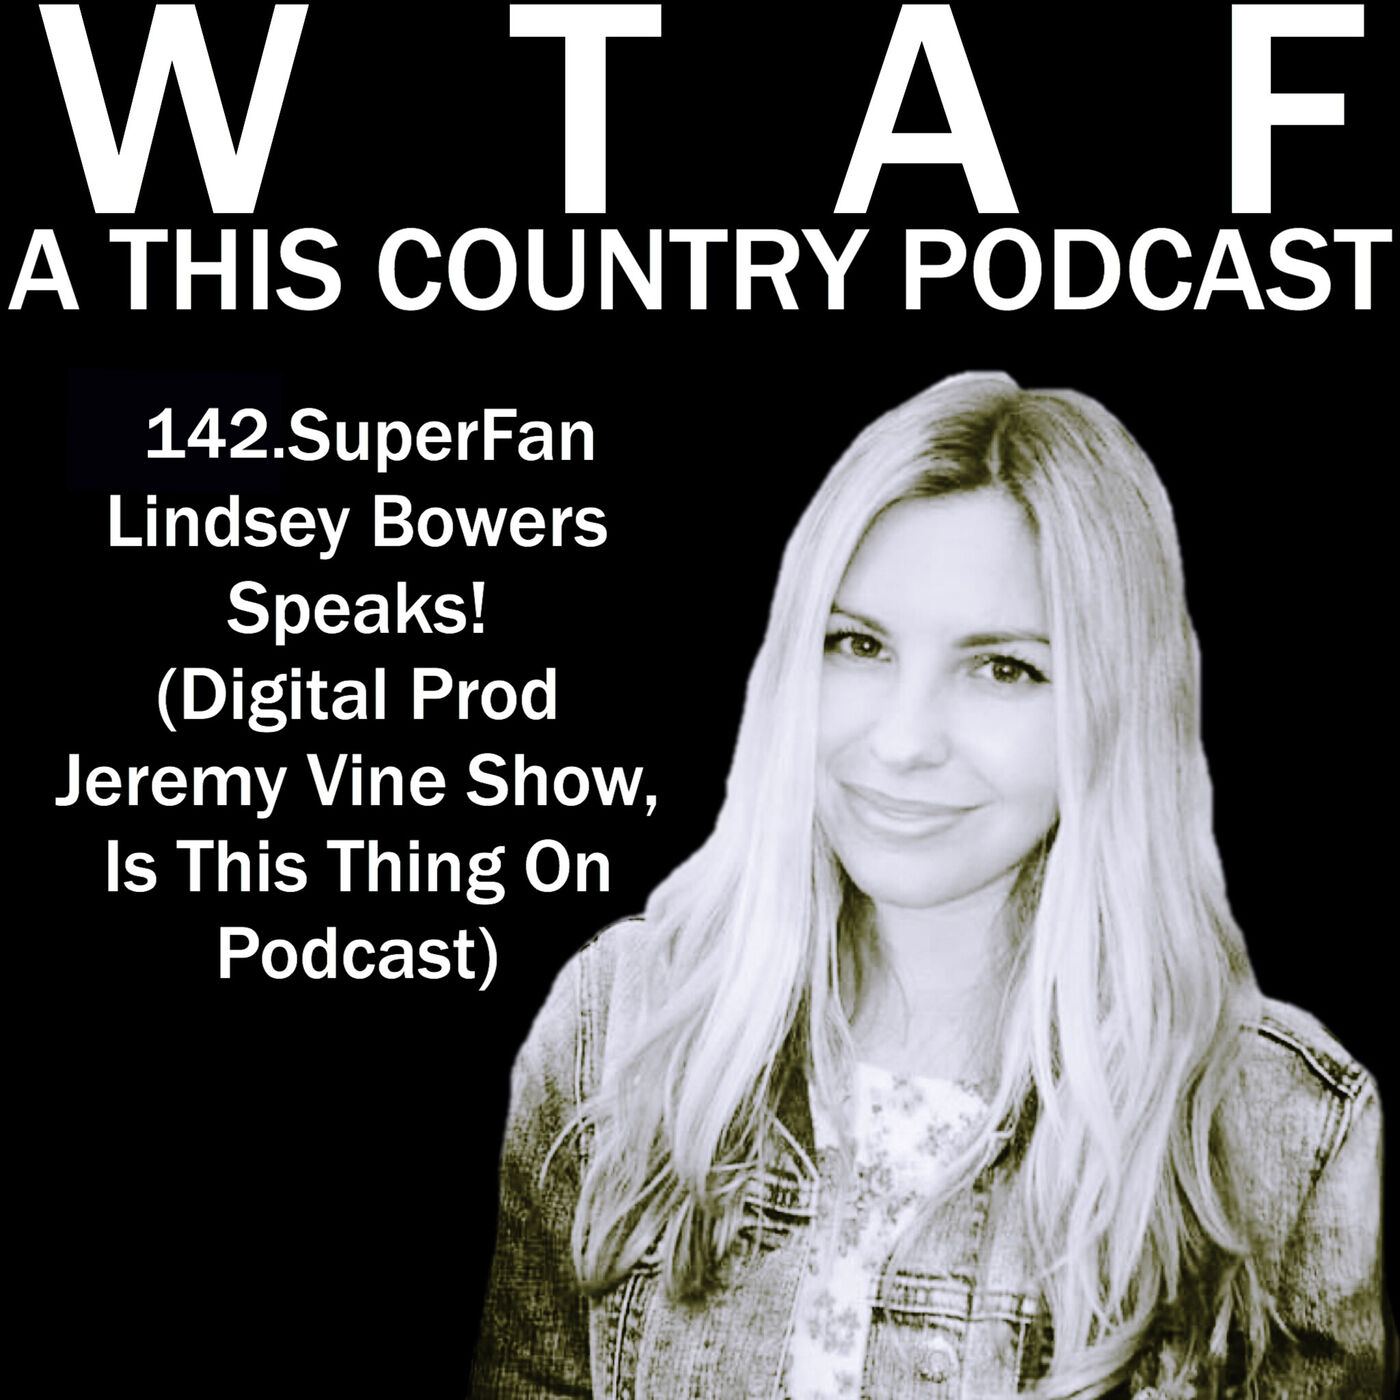 142. SuperFan Lindsey Bowers Speaks! (The Jeremy Vine Show, 'Is This Thing On Podcast'